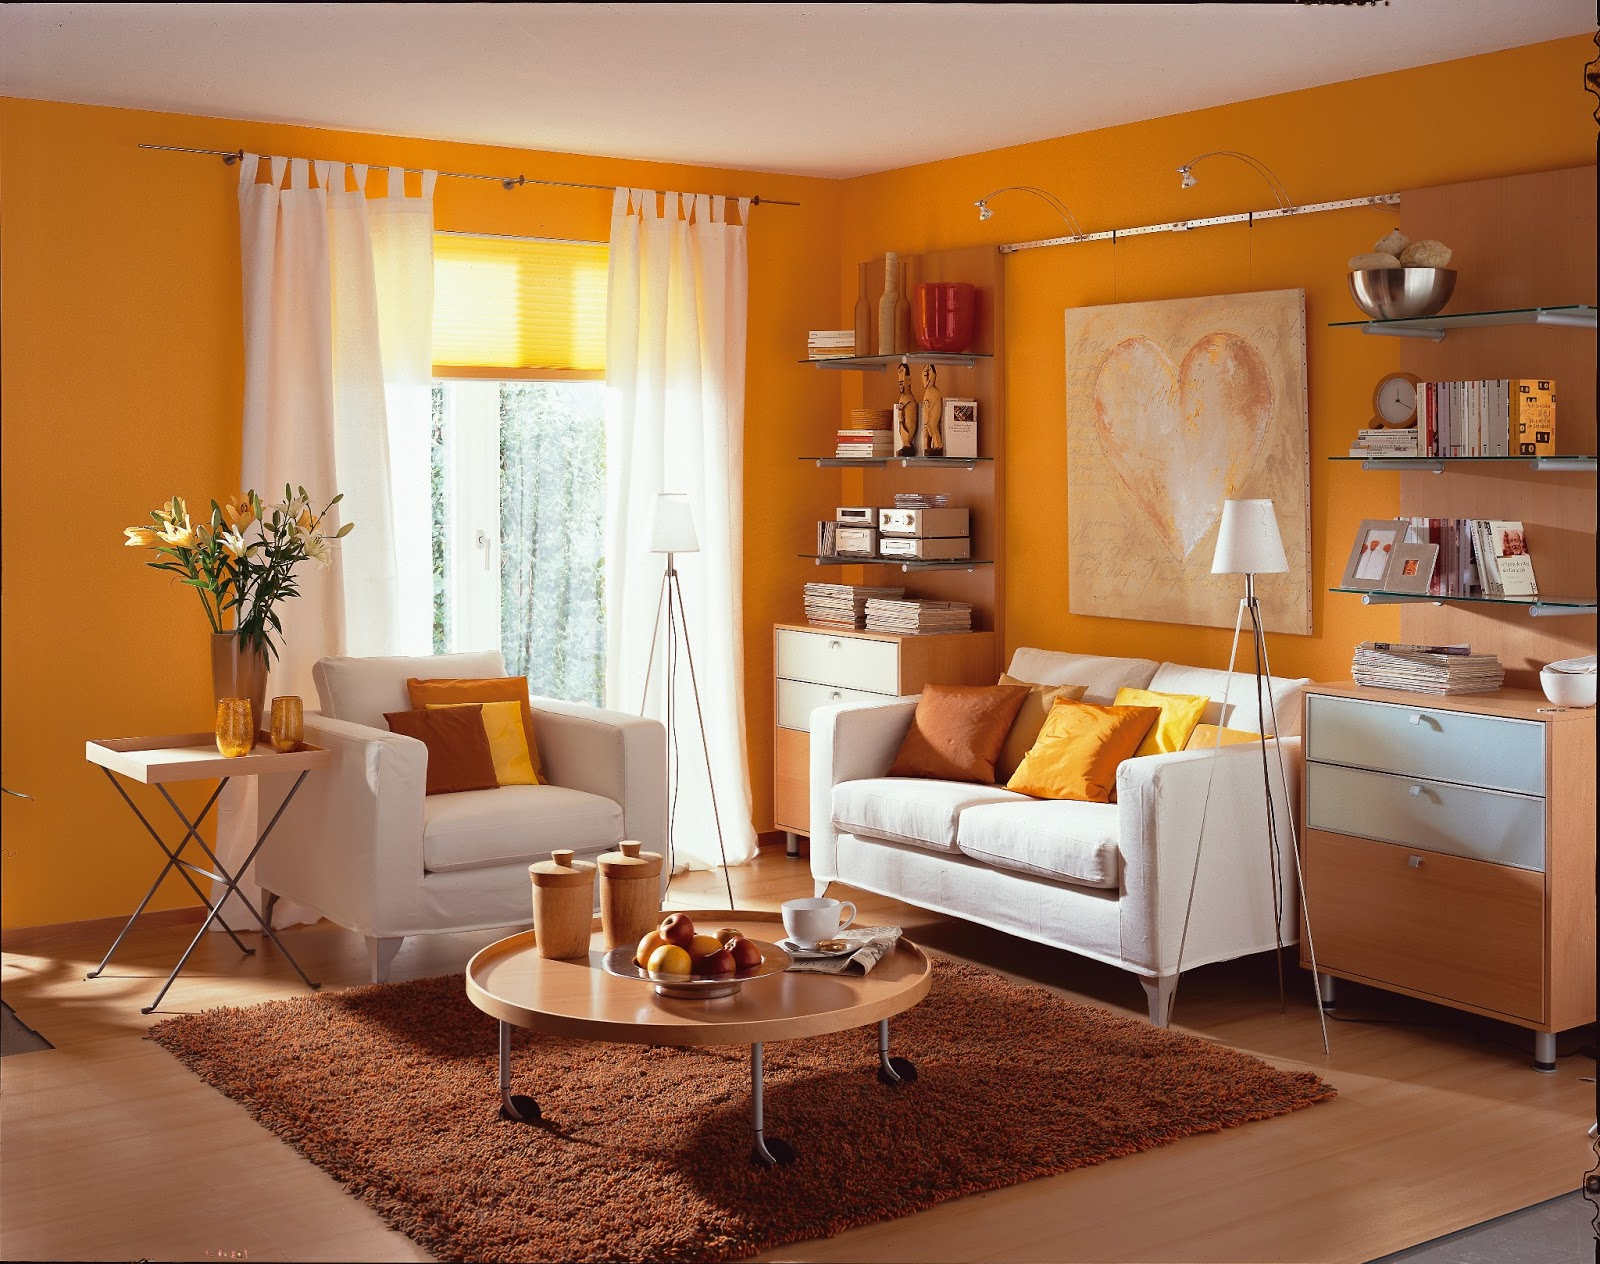 Salas color naranja ideas para decorar dise ar y for Decoracion para pared naranja